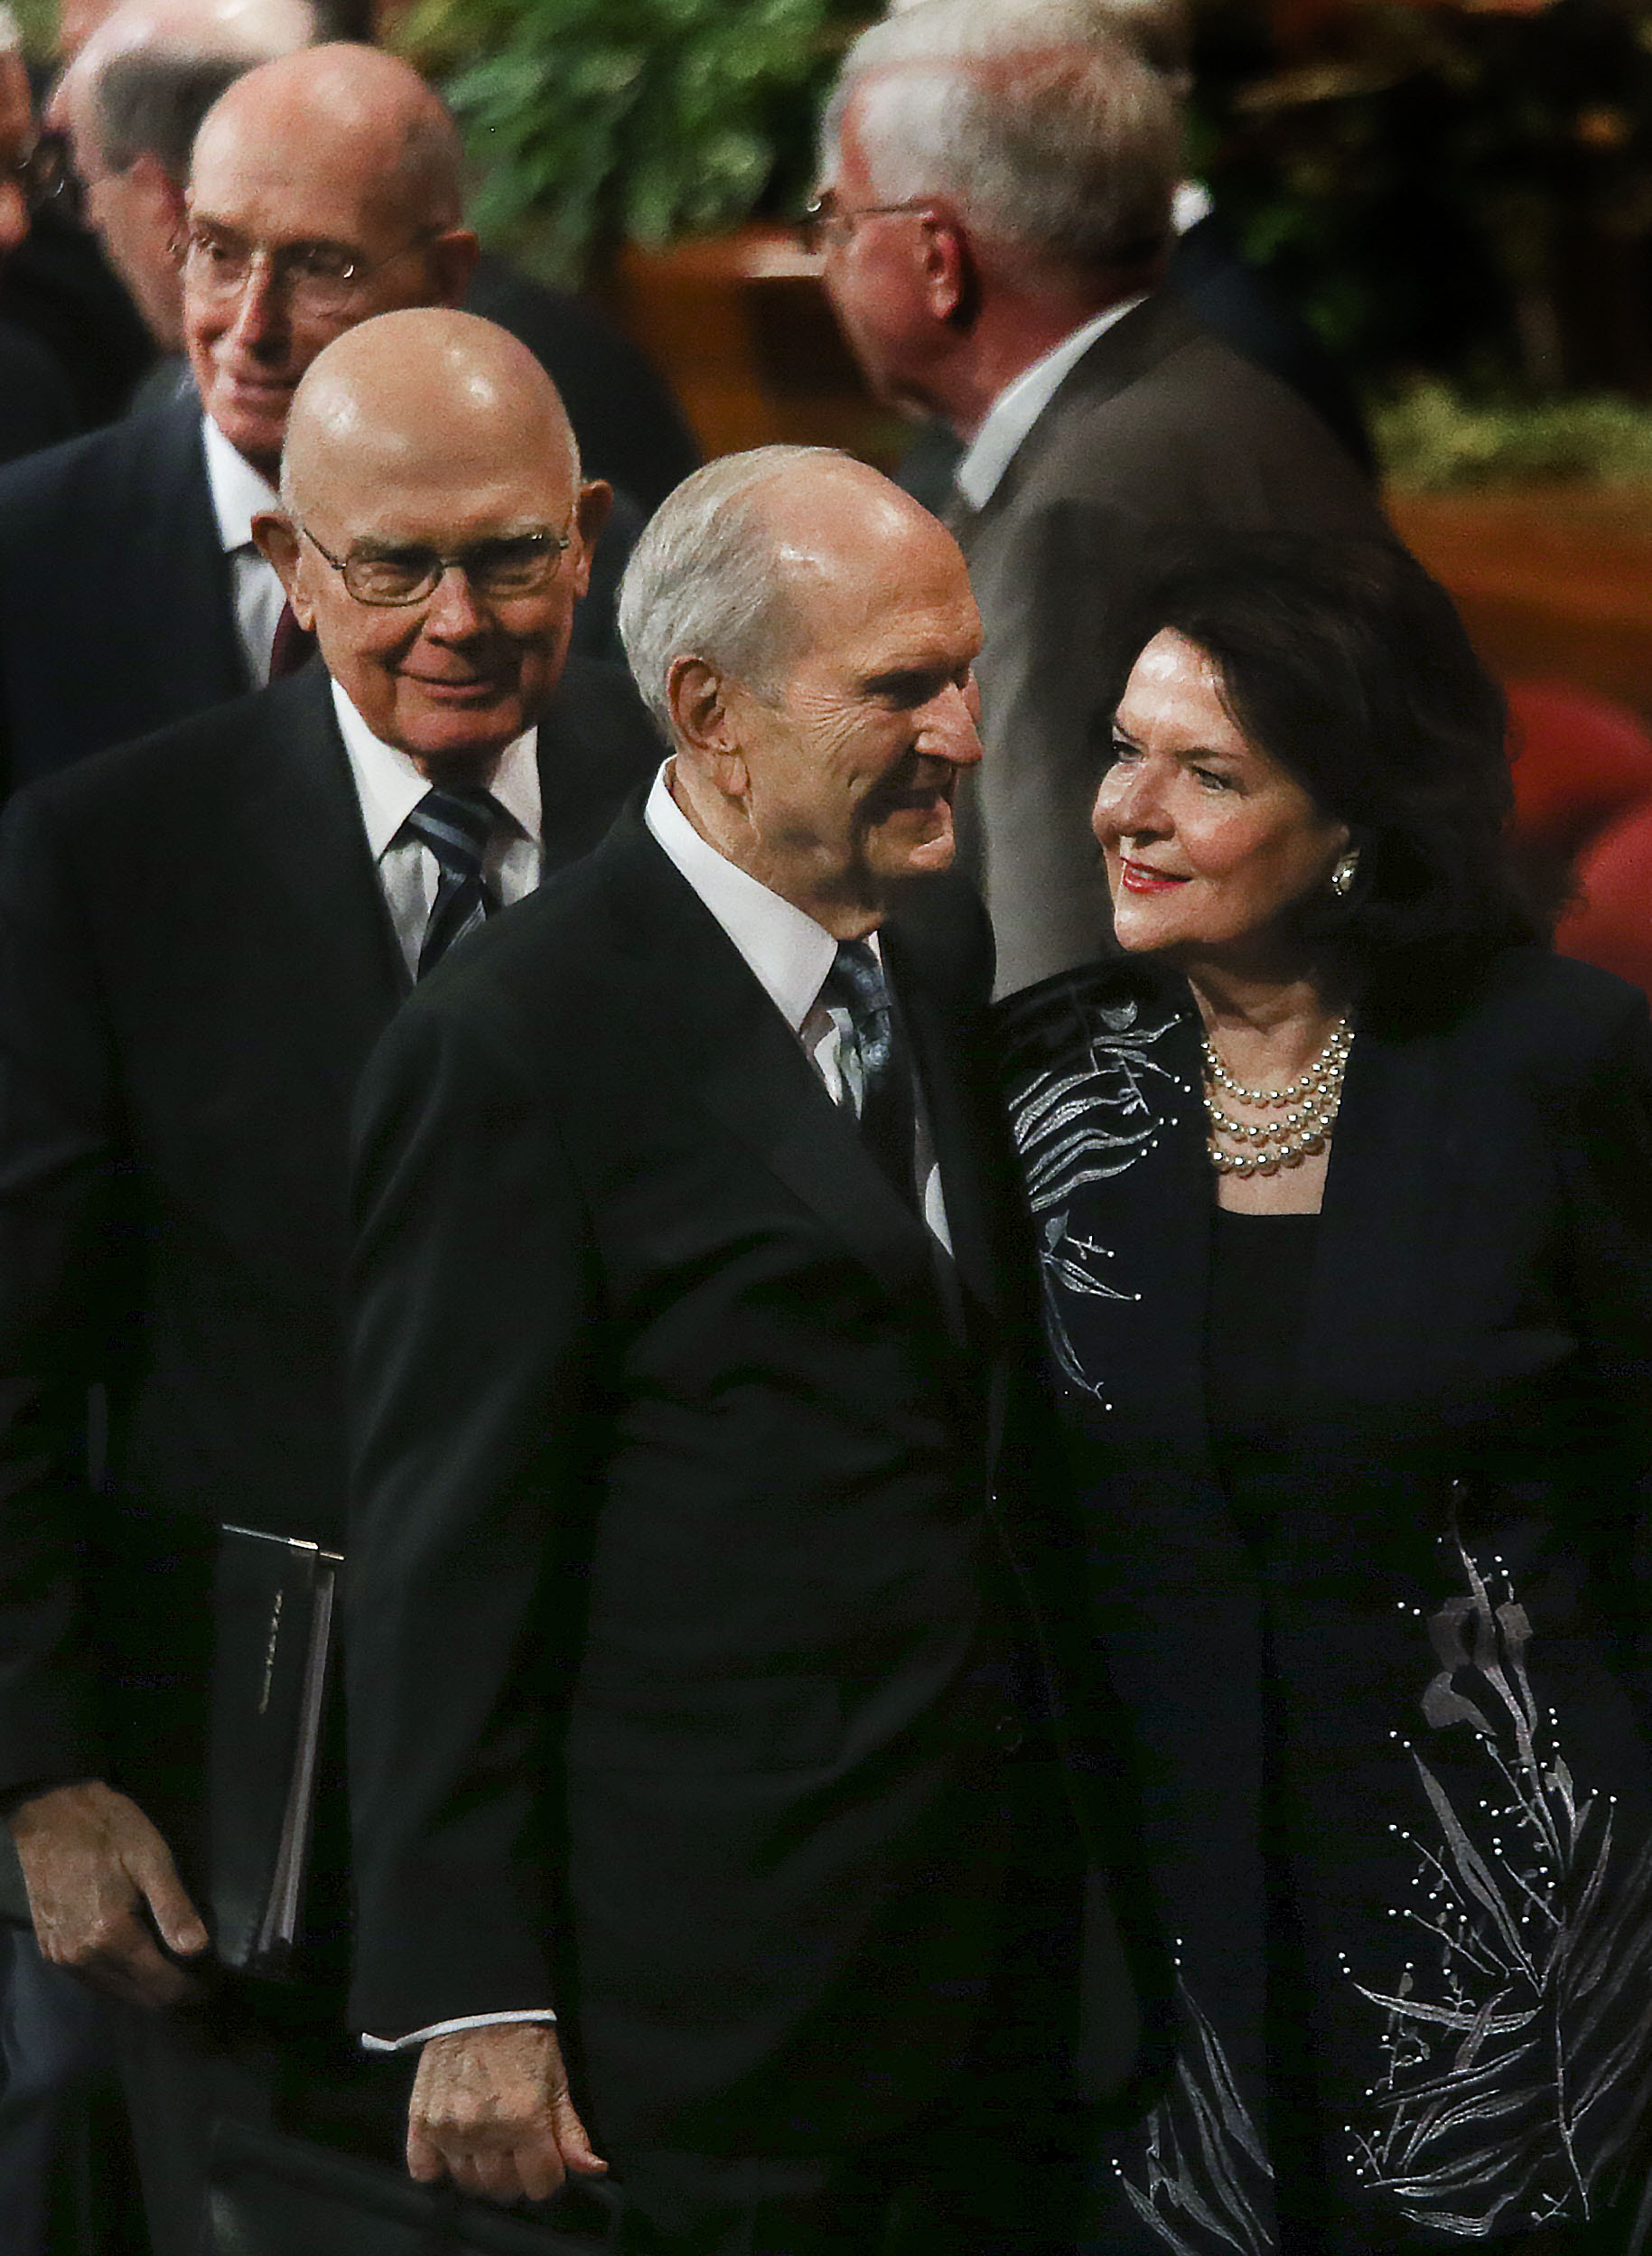 President Russell M. Nelson and his wife Sister Wendy Nelson leave the Sunday afternoon session of the 189th Semiannual General Conference of The Church of Jesus Christ of Latter-day Saints in Salt Lake City on Sunday, Oct. 6, 2019. Following President Nelson and his wife is President Dallin H. Oaks, first counselor in the First Presidency, and President Henry B. Eyring, second counselor in the First Presidency.